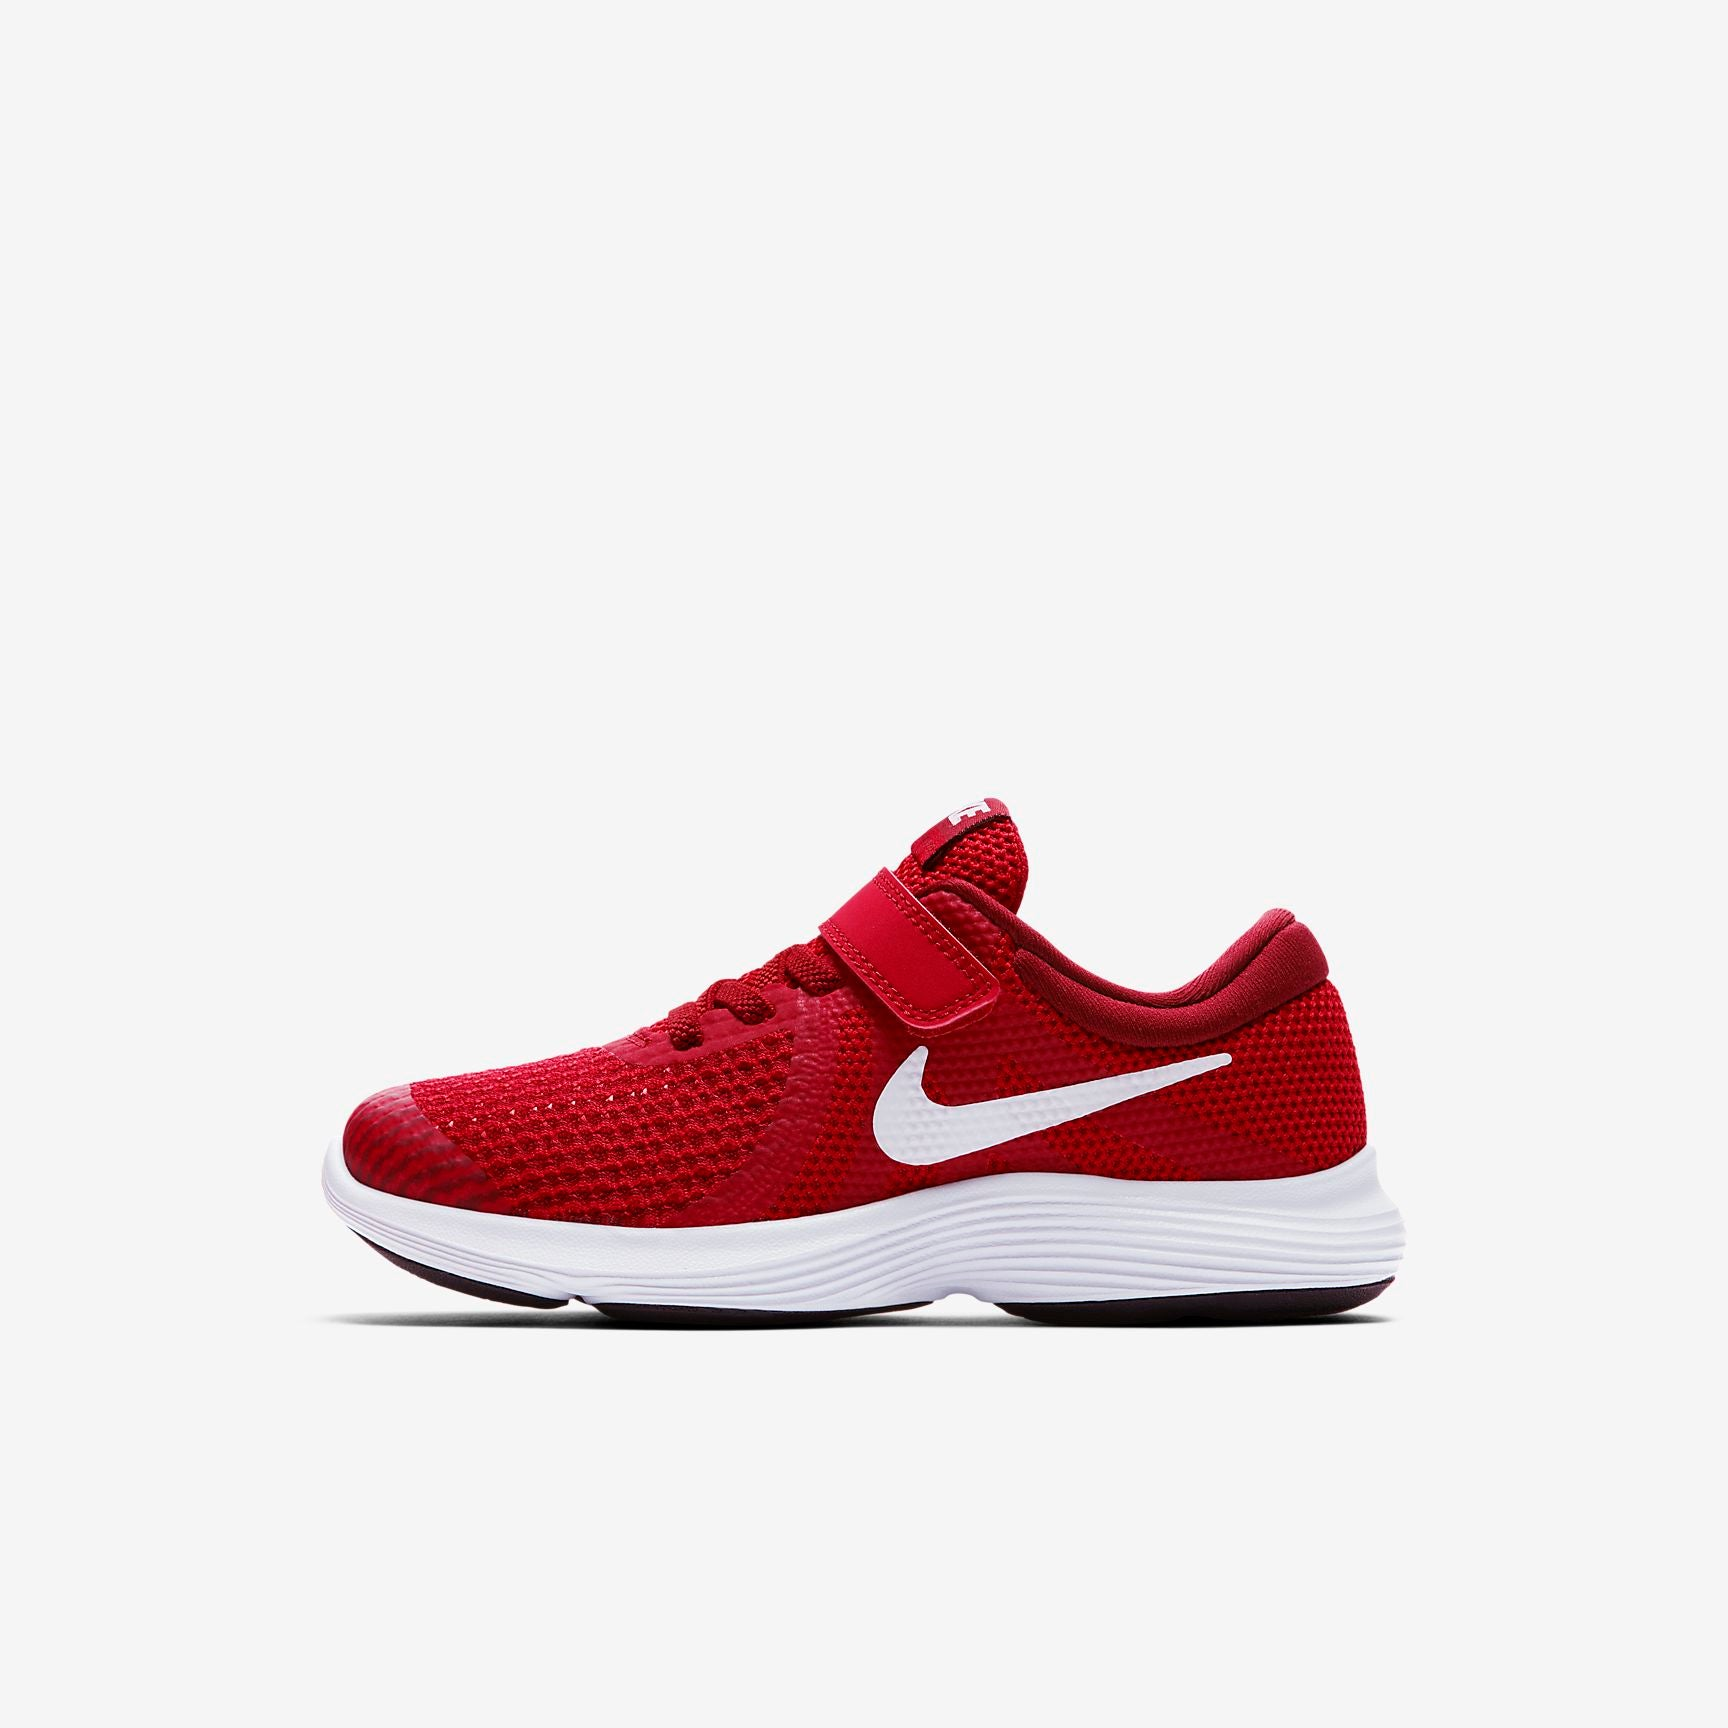 NIKE REVOLUTION 4 TD INFANTS